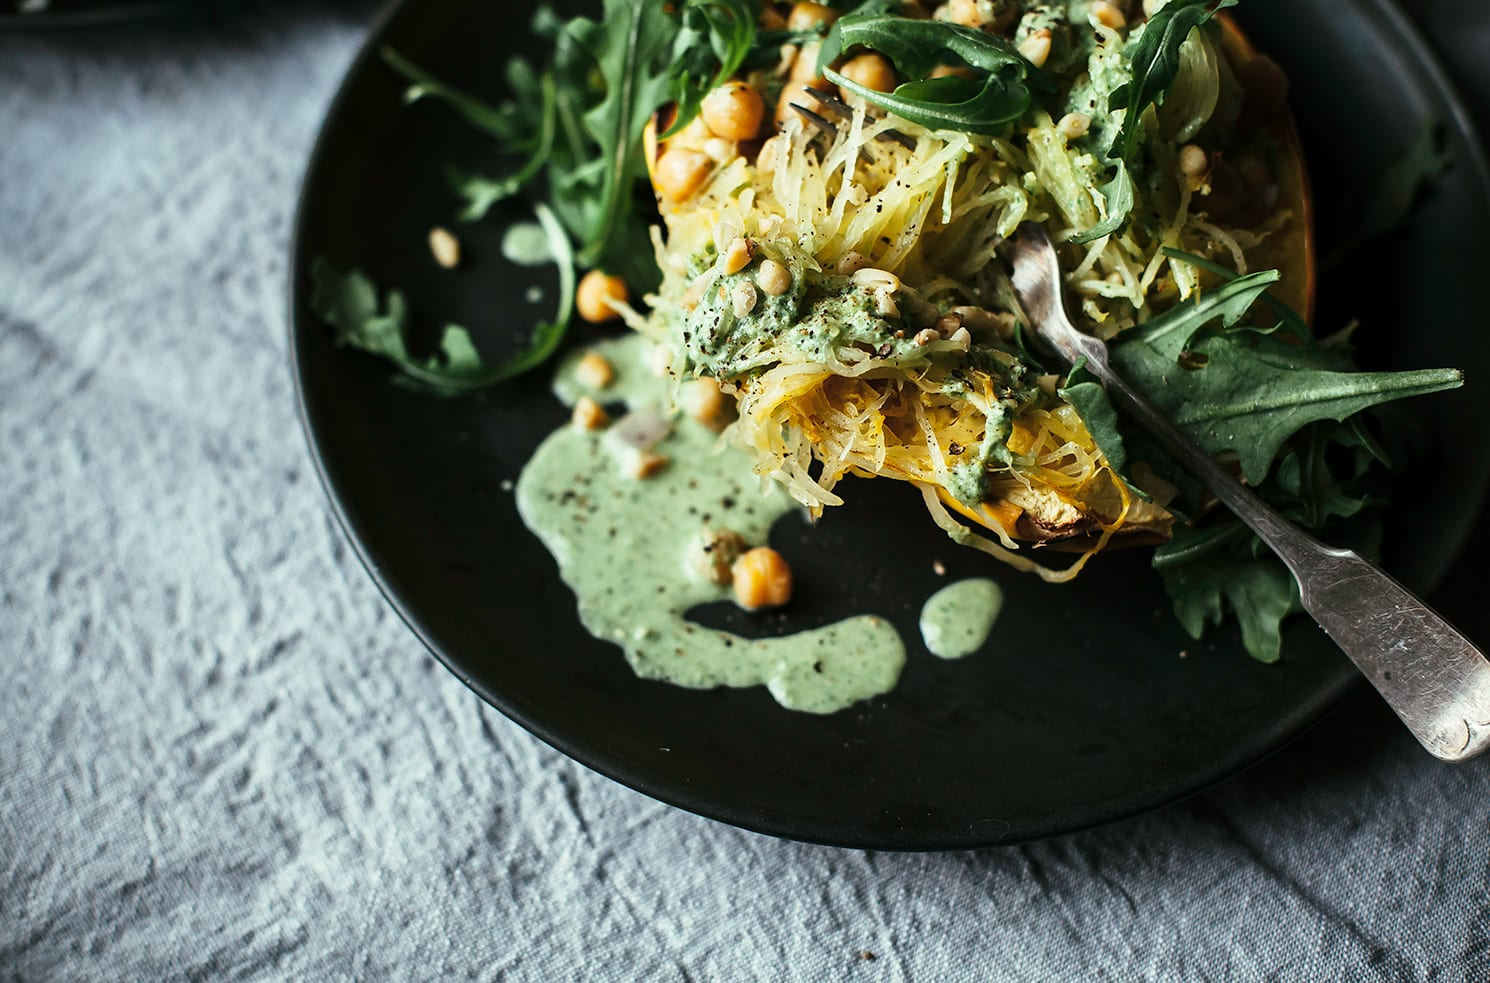 An overhead shot of stuffed spaghetti squash with a bright green arugula cream, leaves of arugula, and chickpeas. The squash is served on a black plate on top of a grey linen tablecloth.